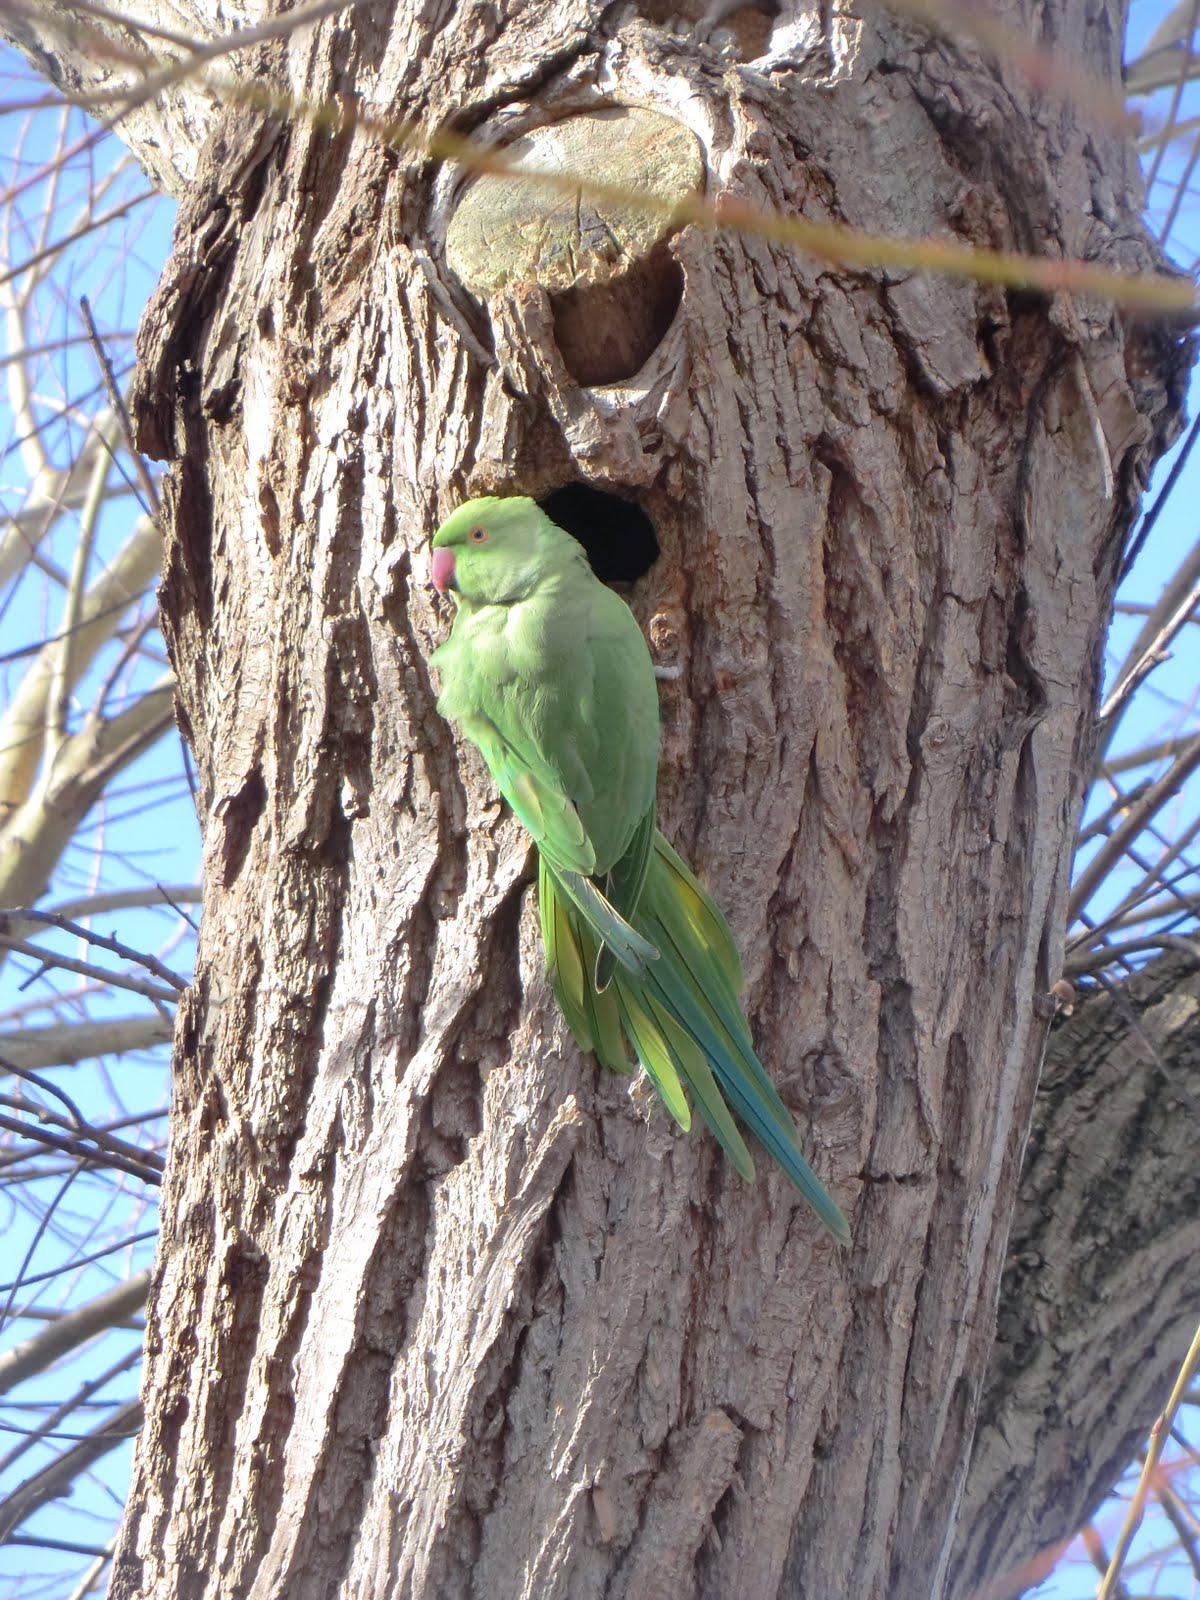 CIMG2677 A rose-ringed parakeet outside its nest